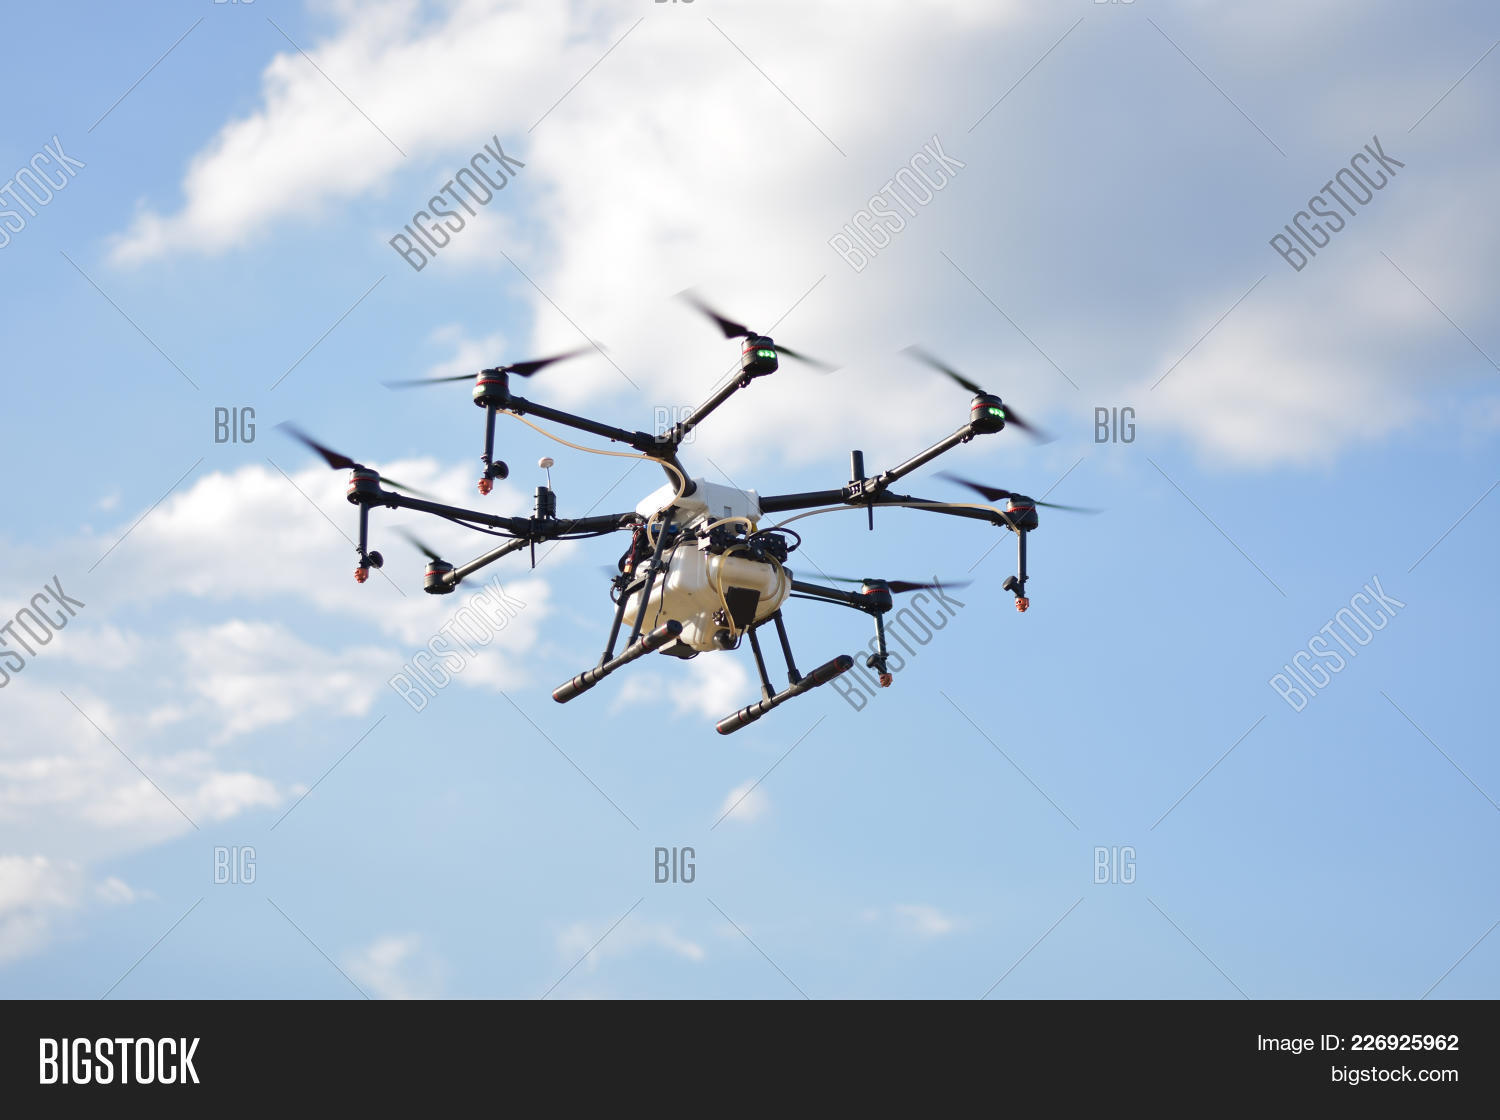 Flying Agriculture Image & Photo (Free Trial) | Bigstock